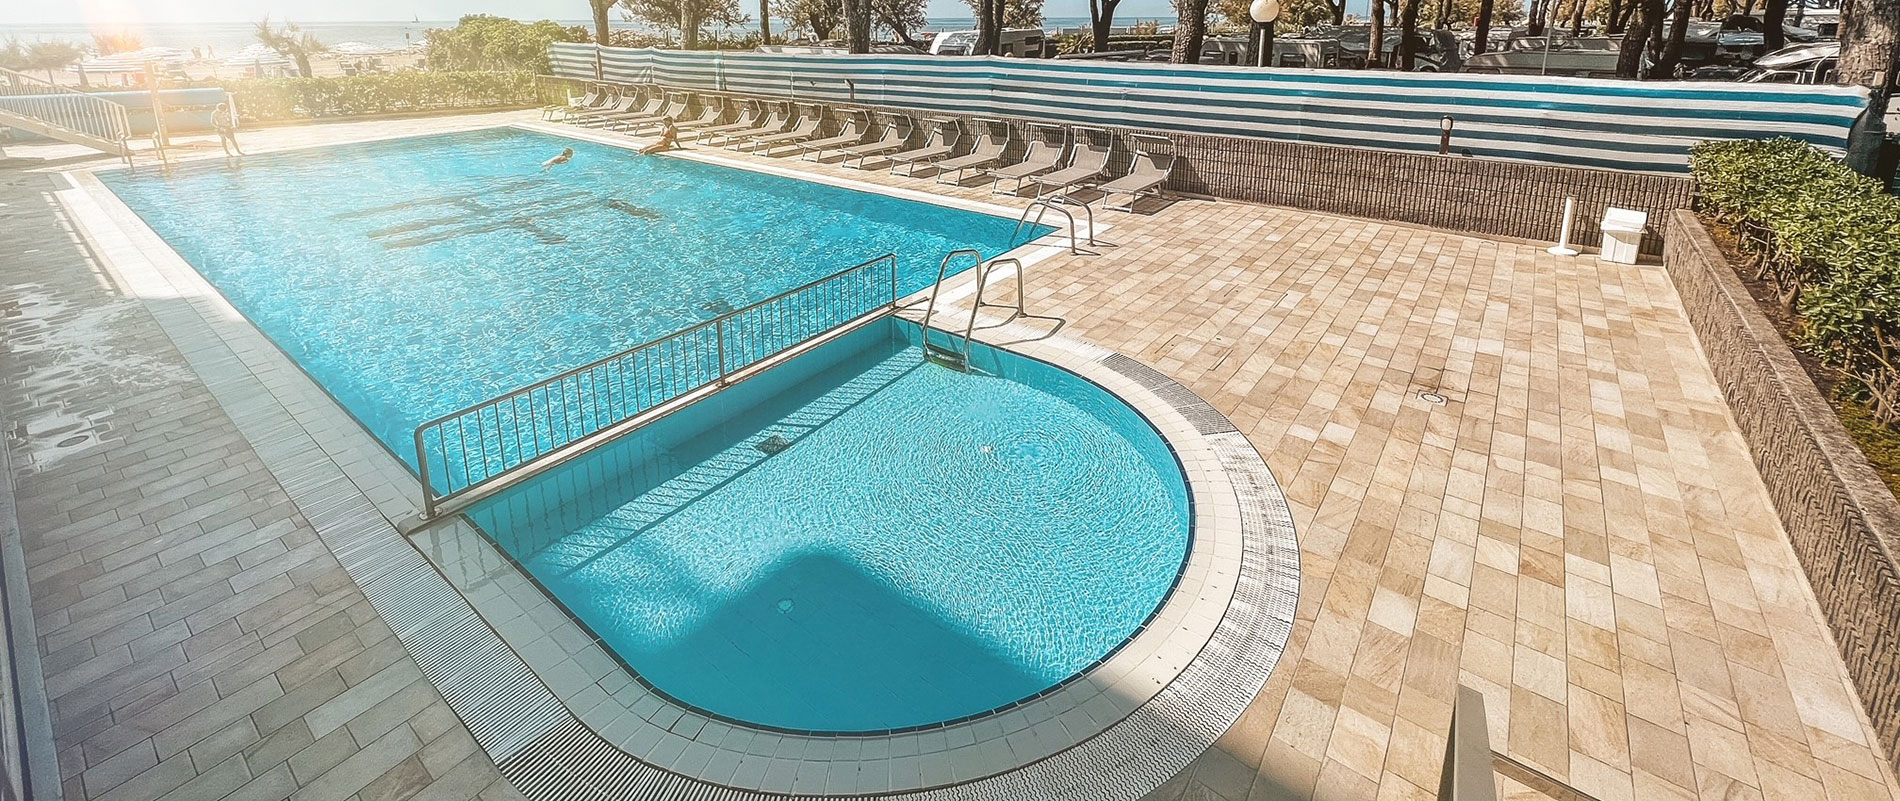 Hotel Fenix : Seafront hotel with swimming pool in Cavallino (Venice) Italy